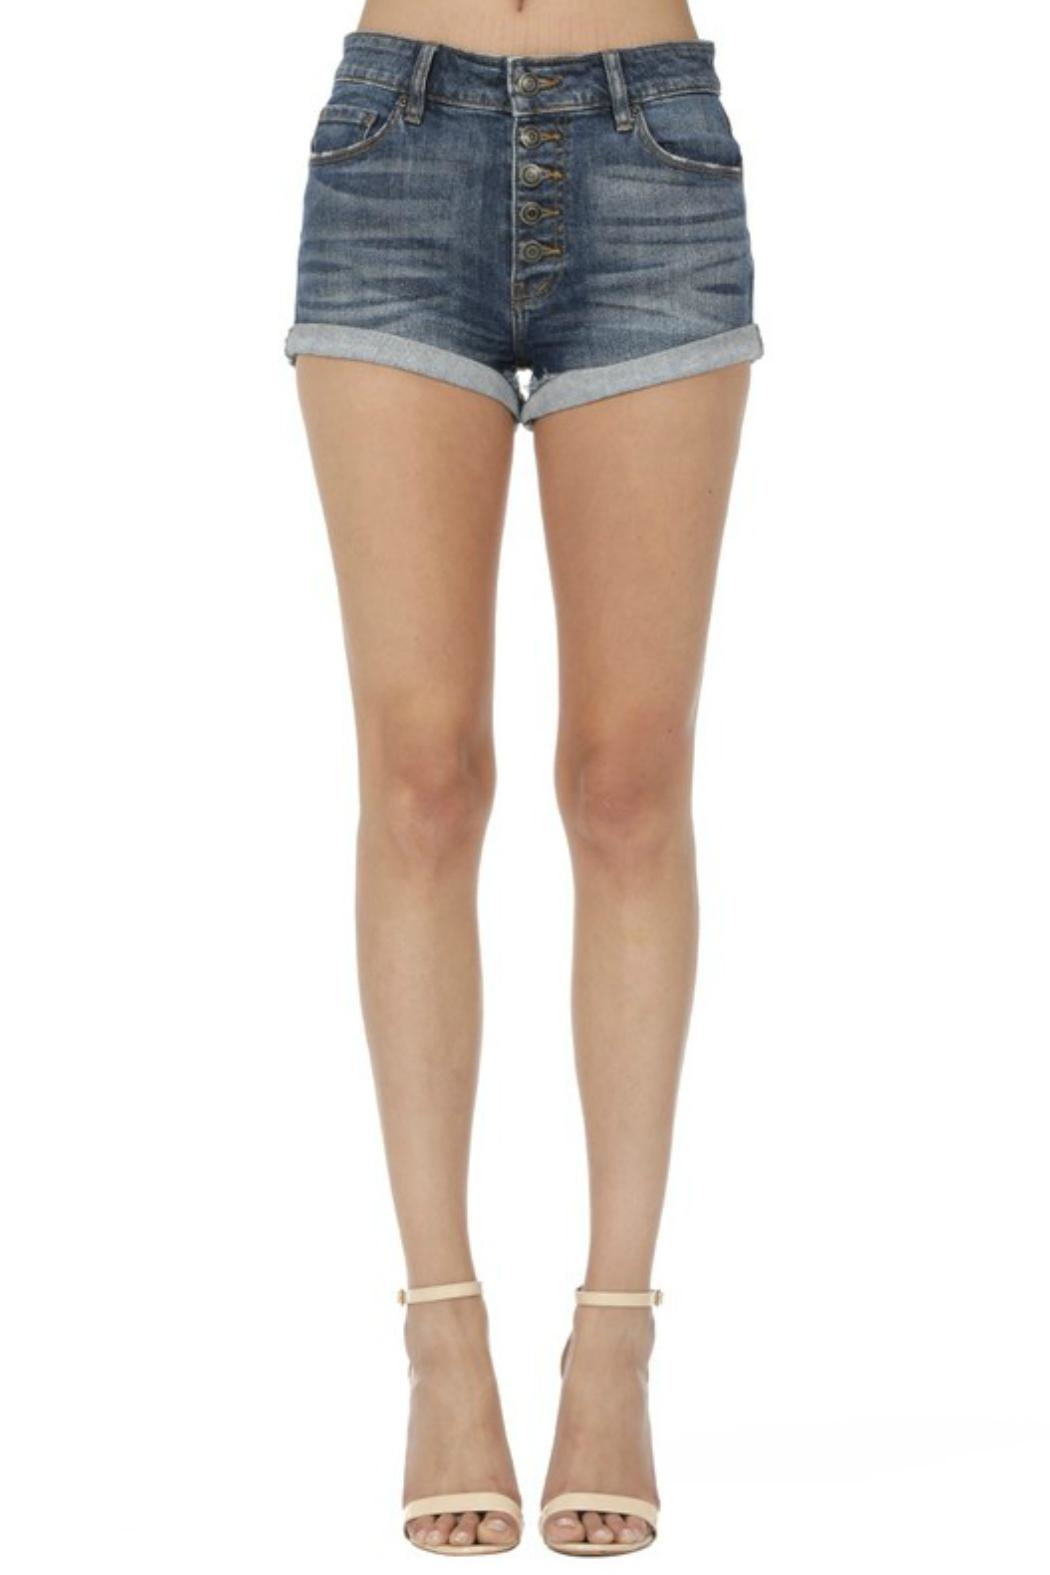 c30b4c707d795 Eunina High-Rise Button-Fly Shorts from Texas by POE and Arrows ...